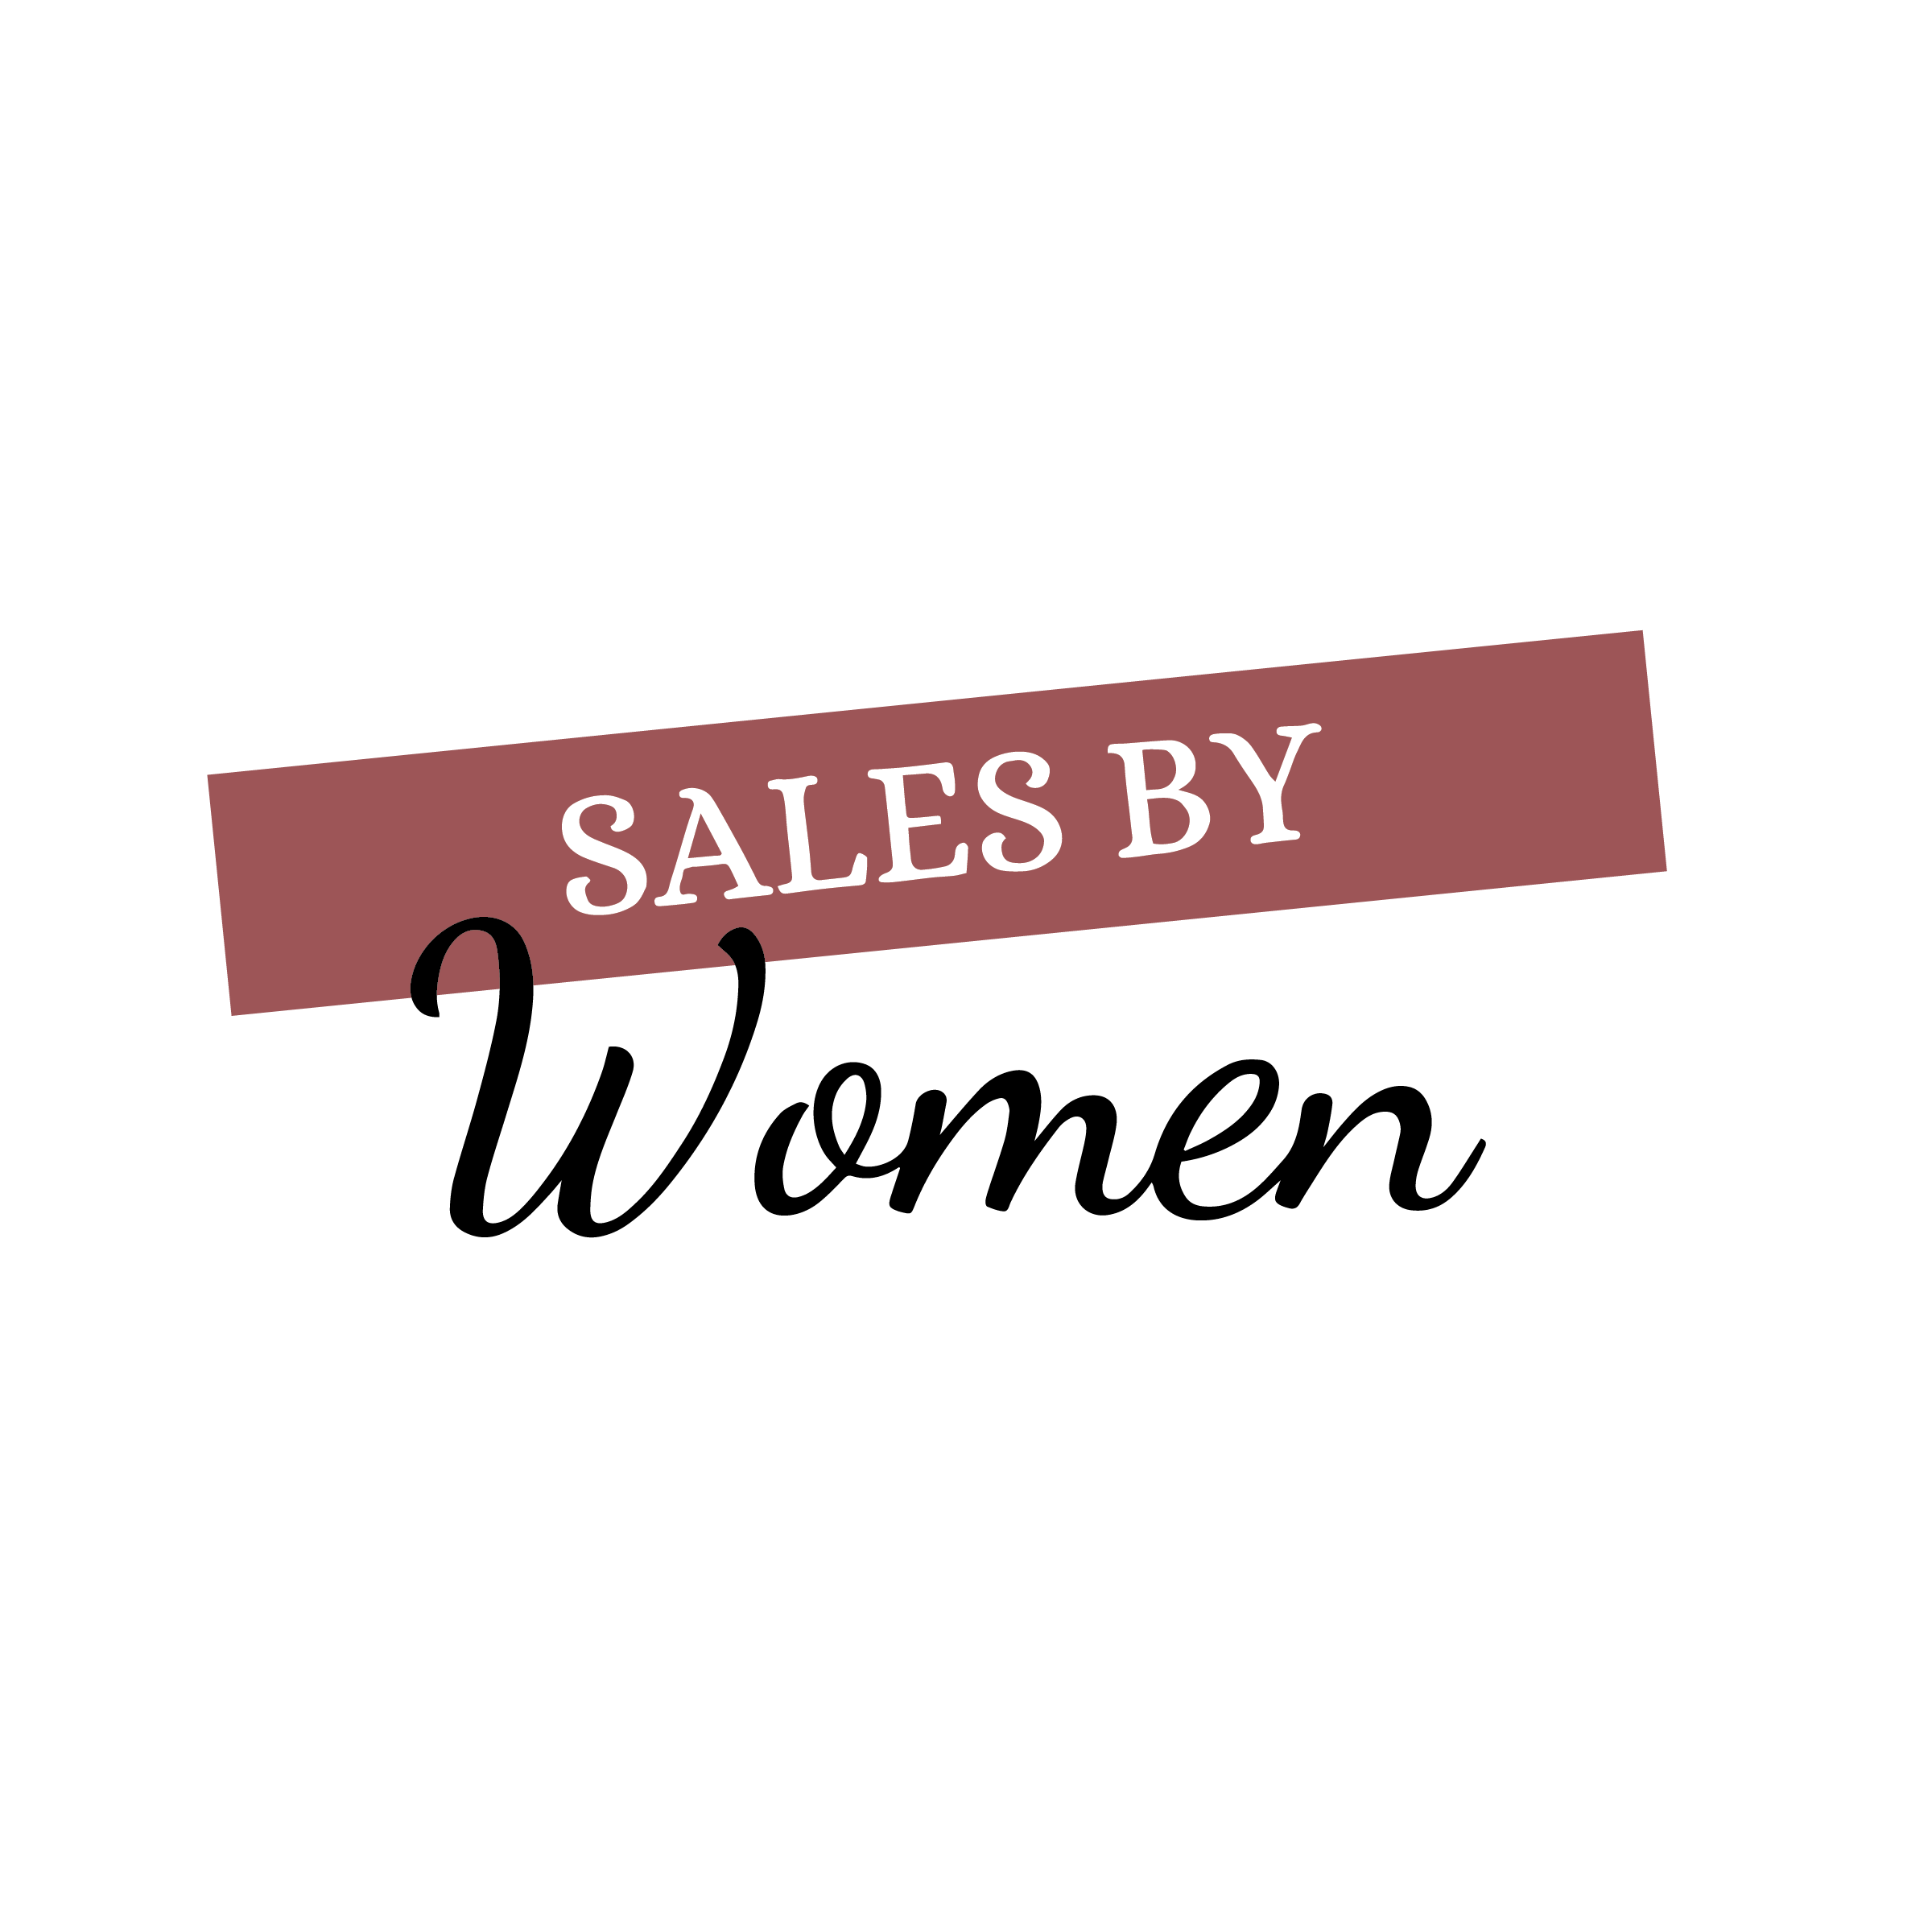 Sales by Women